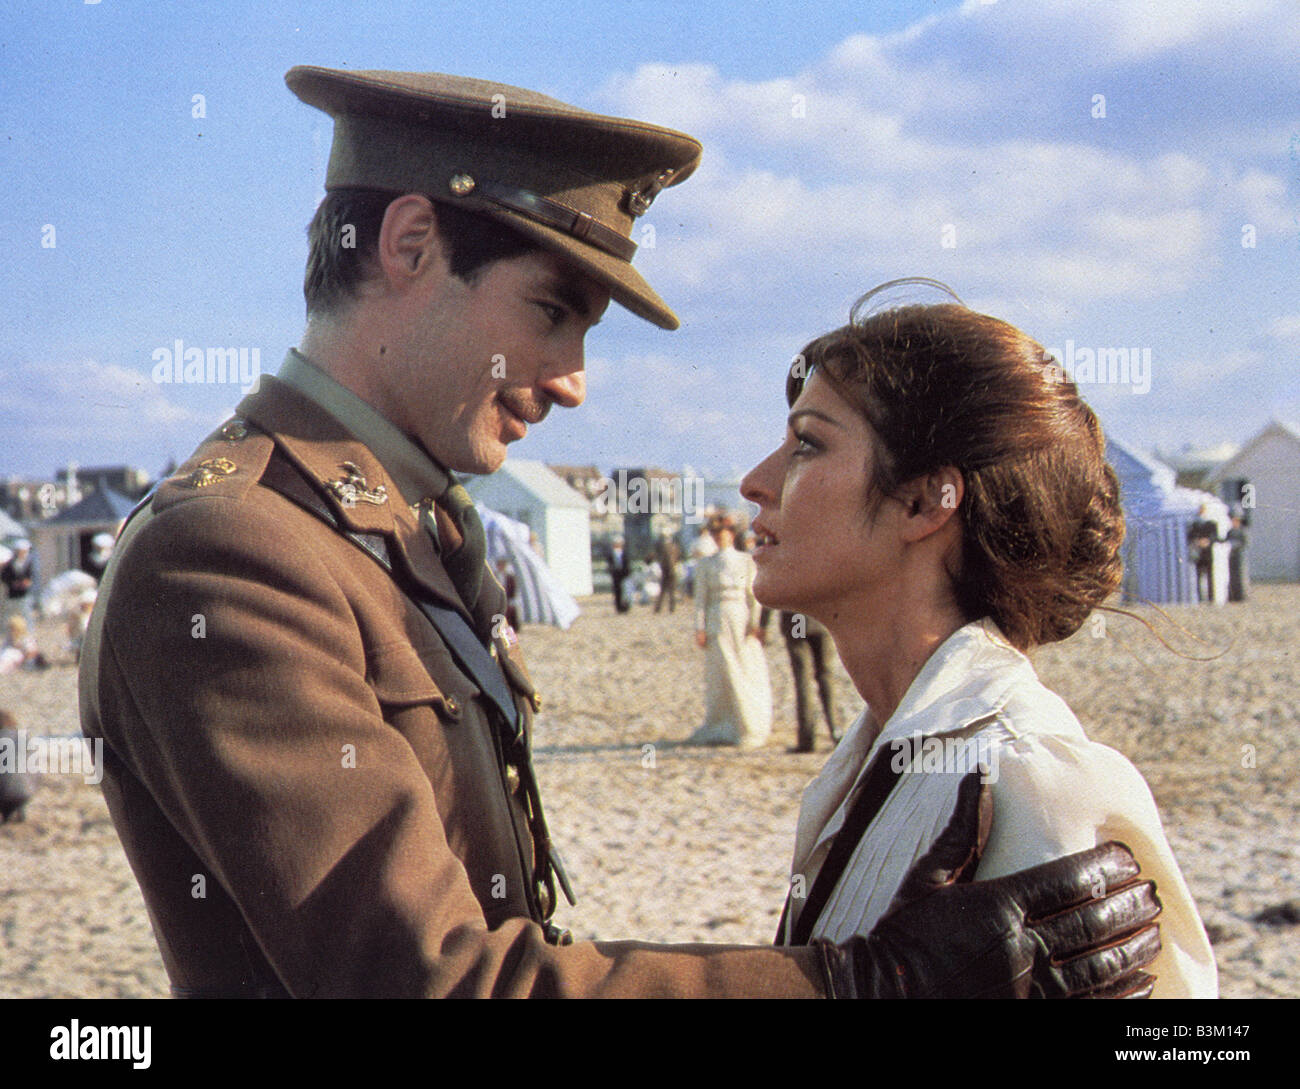 CHANEL SOLITAIRE 1981 Gardenia film with Timothy Dalton and Marie-France Pisier - Stock Image